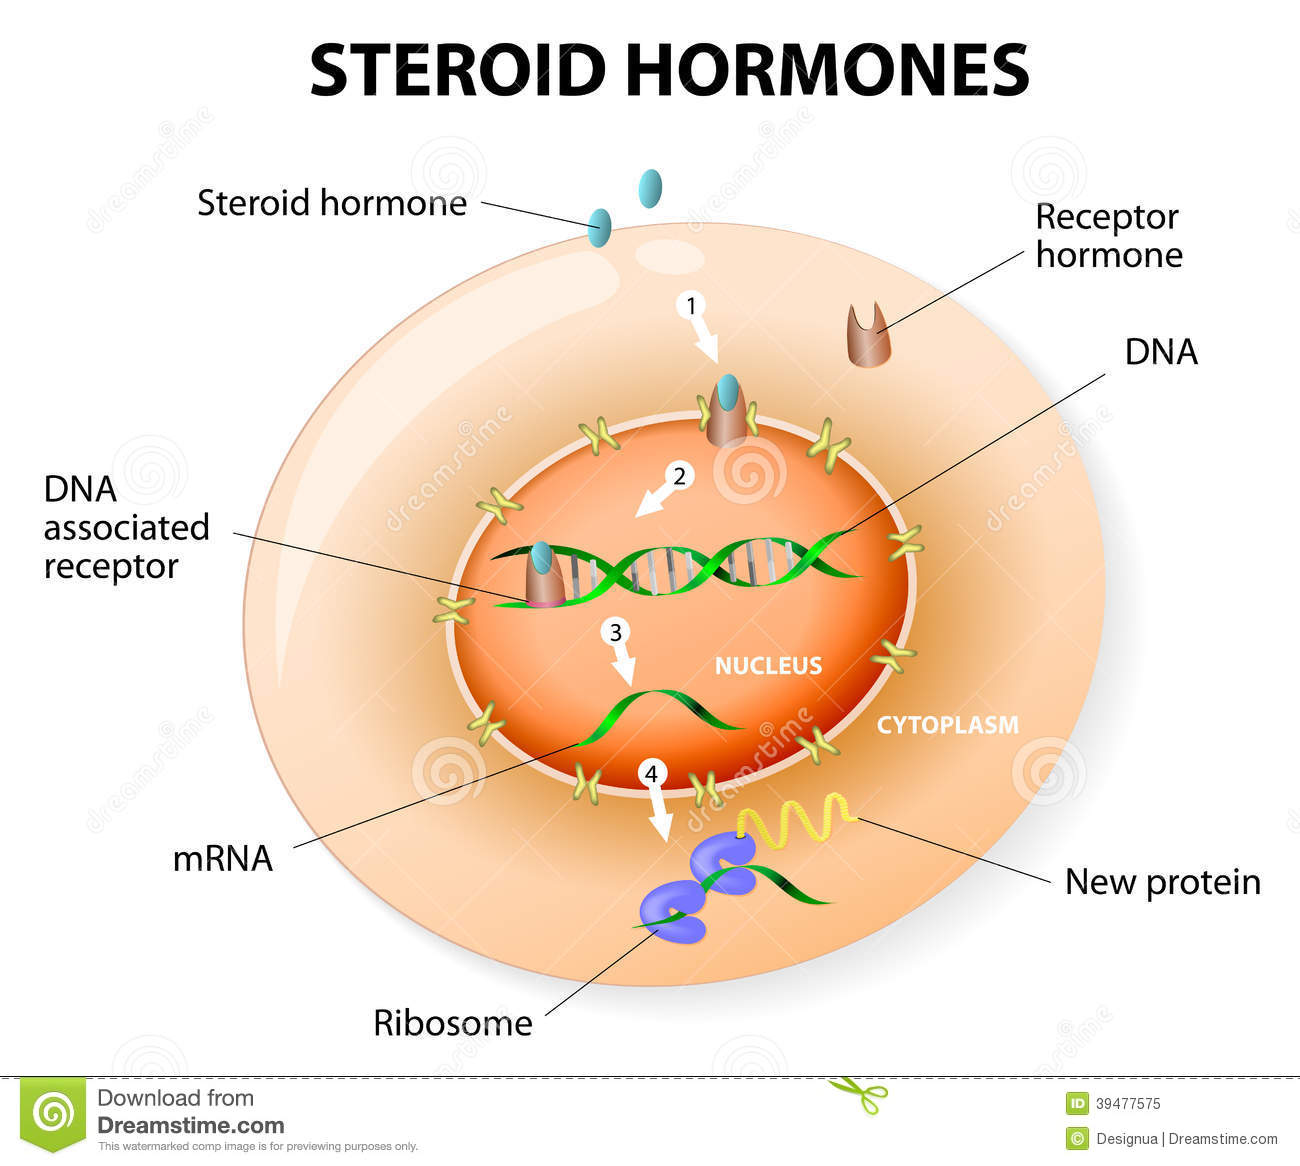 all steroids hormones are derived from